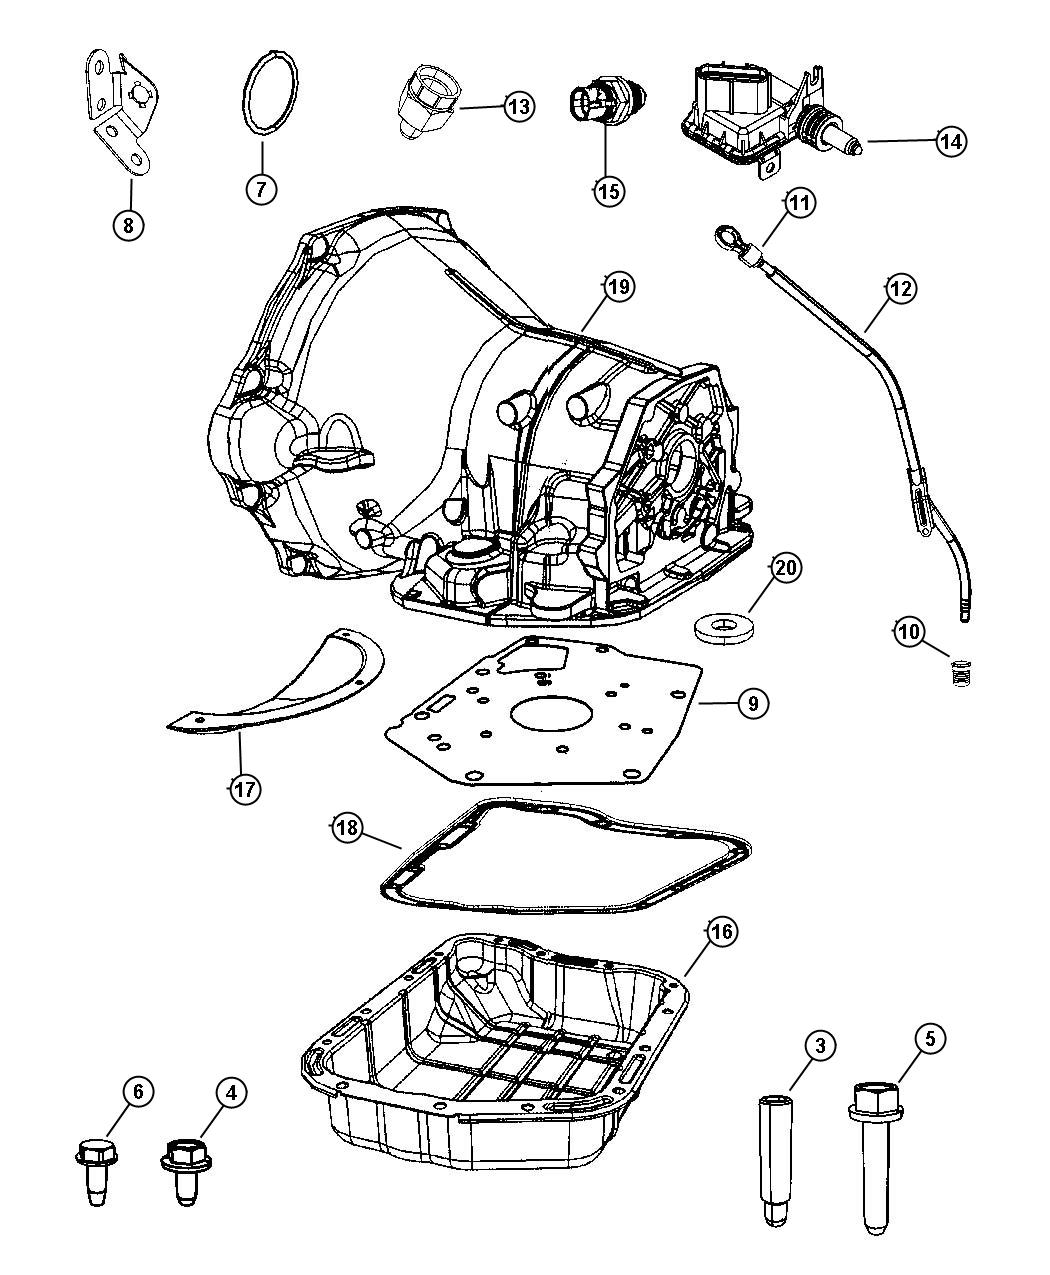 1993 geo metro wiring diagram besides 97 neon belt diagram additionally chevy relay location likewise 1993